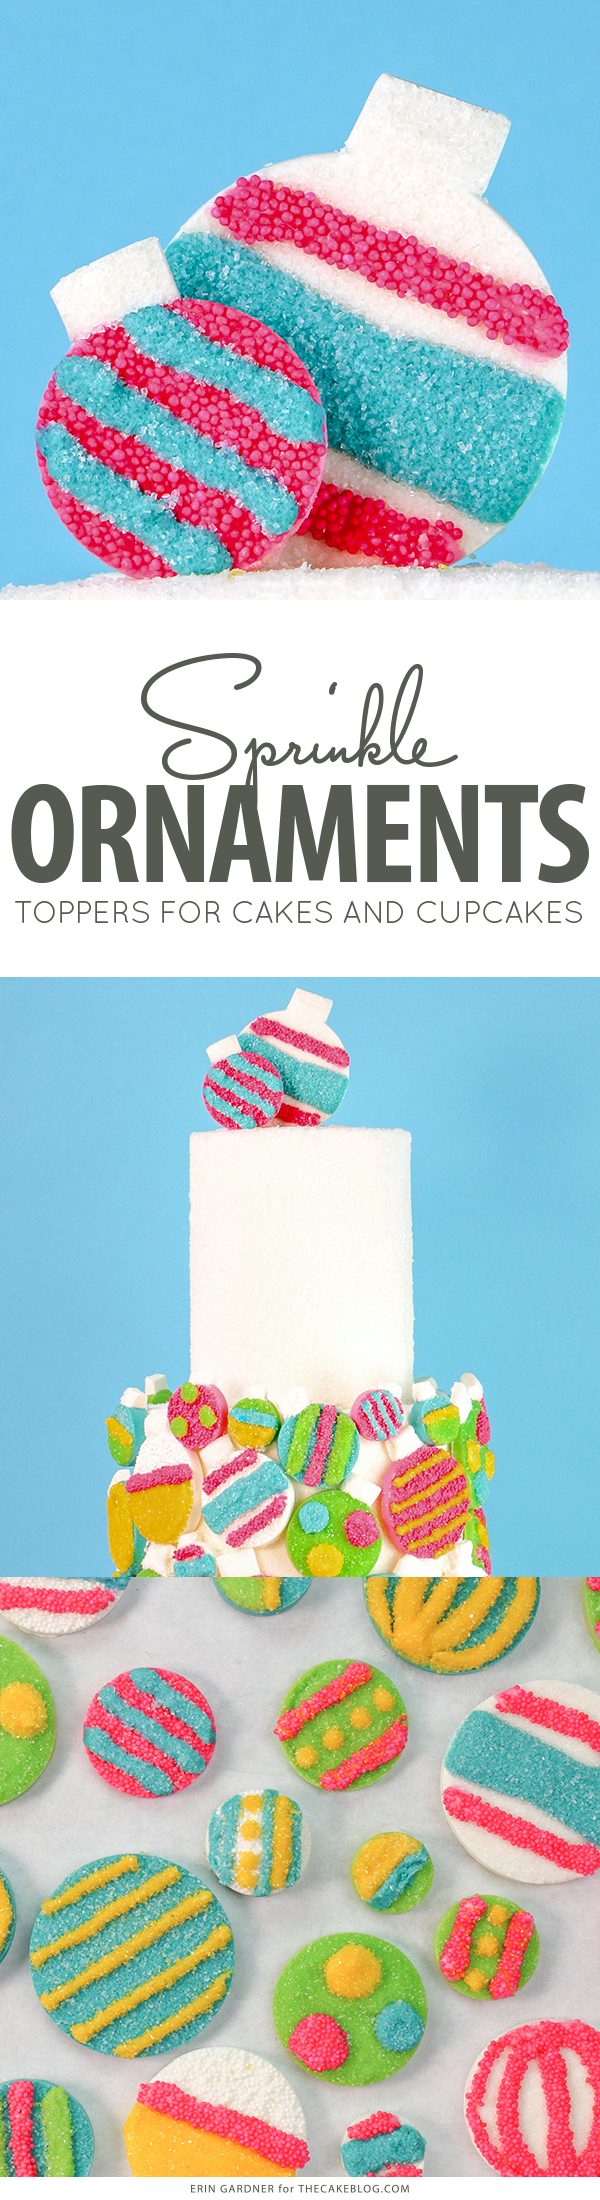 Sprinkle Ornament Cake – how to make sparkling ornaments for cakes and cupcakes using chocolate, cookie cutters and sprinkles | by Erin Gardner for TheCakeBlog.com